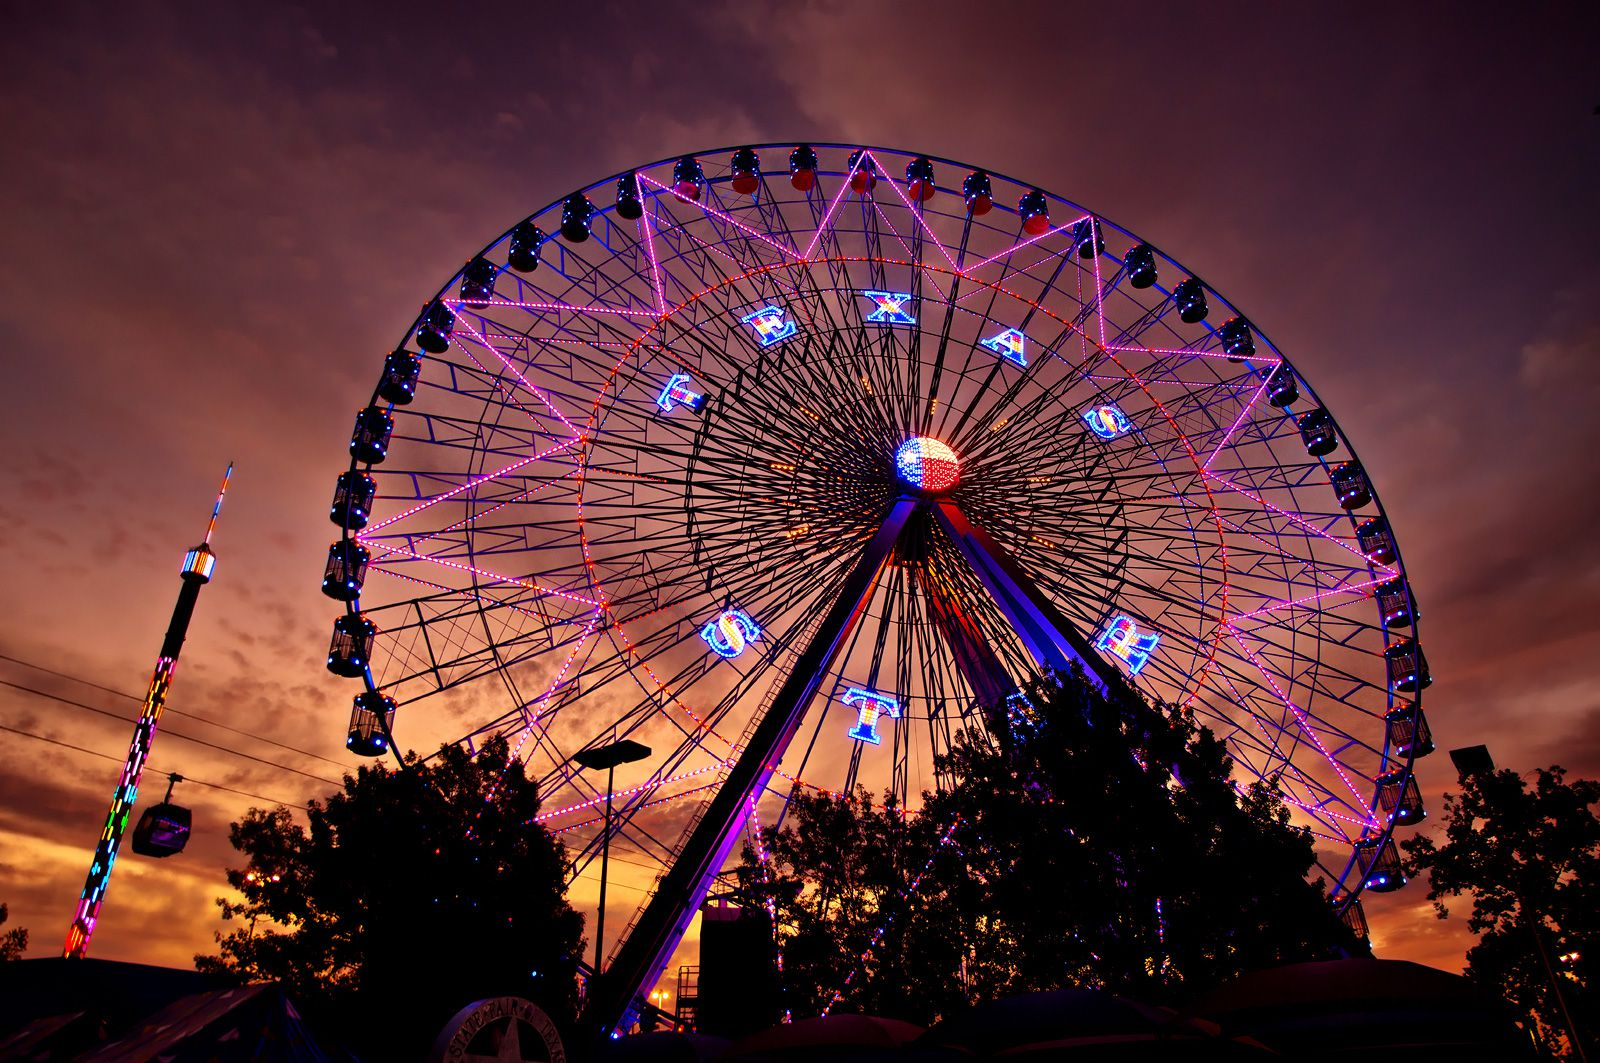 The Texas Star Ferris Wheel lit up in neon against a technicolor sunset.